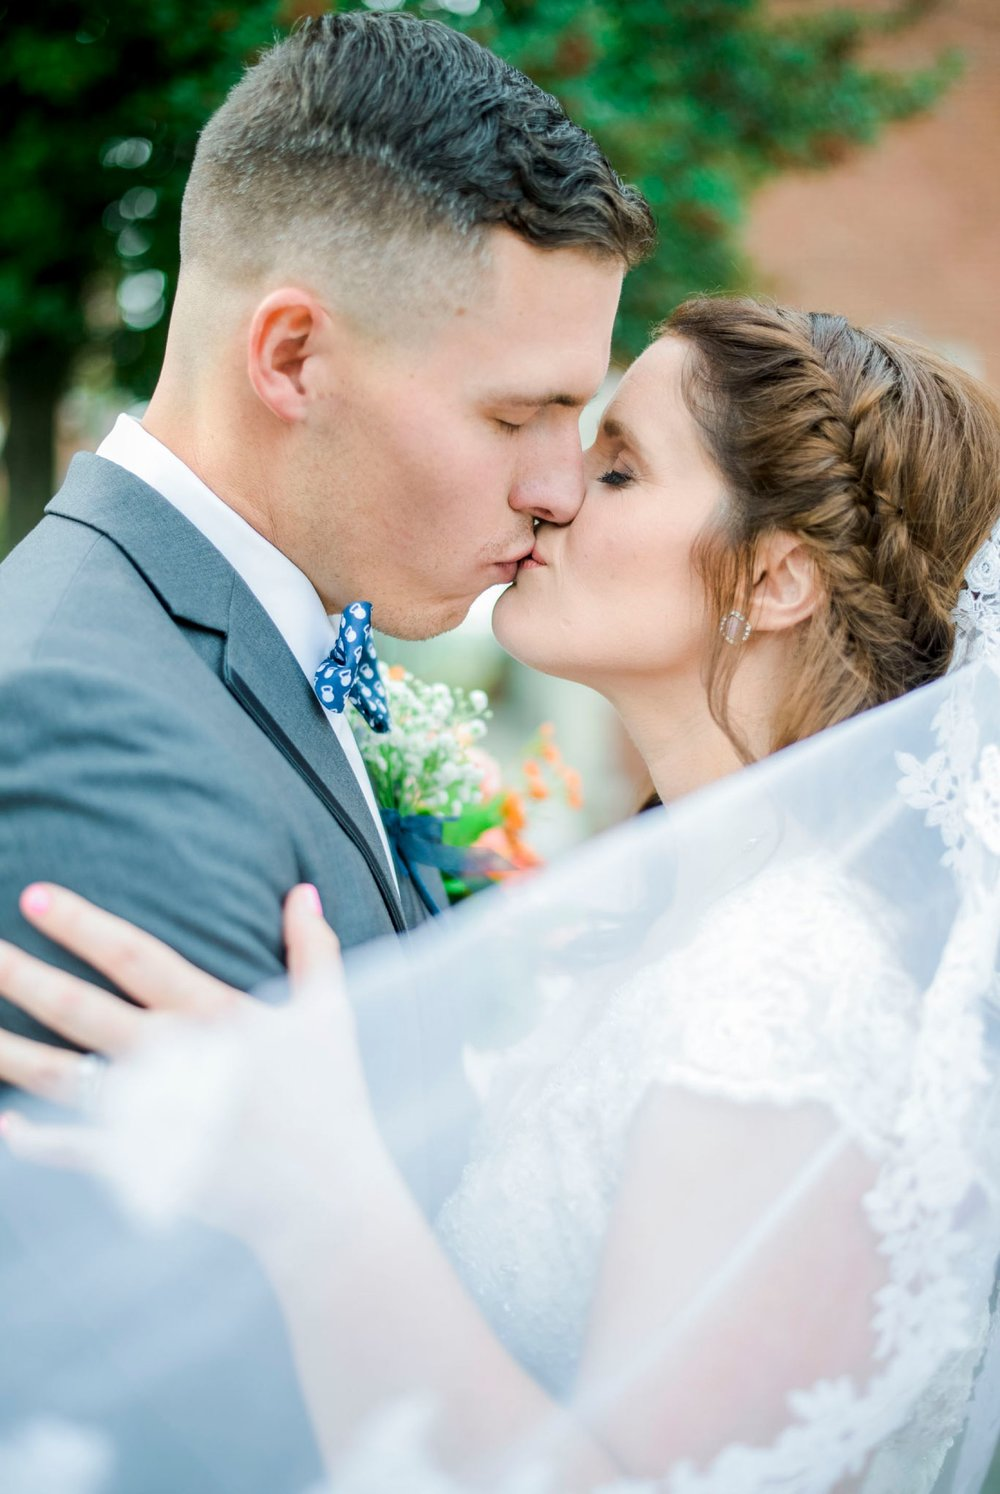 Trescaon8th_DowntownLynchburg_Virginiaweddingphotographer 60.jpg